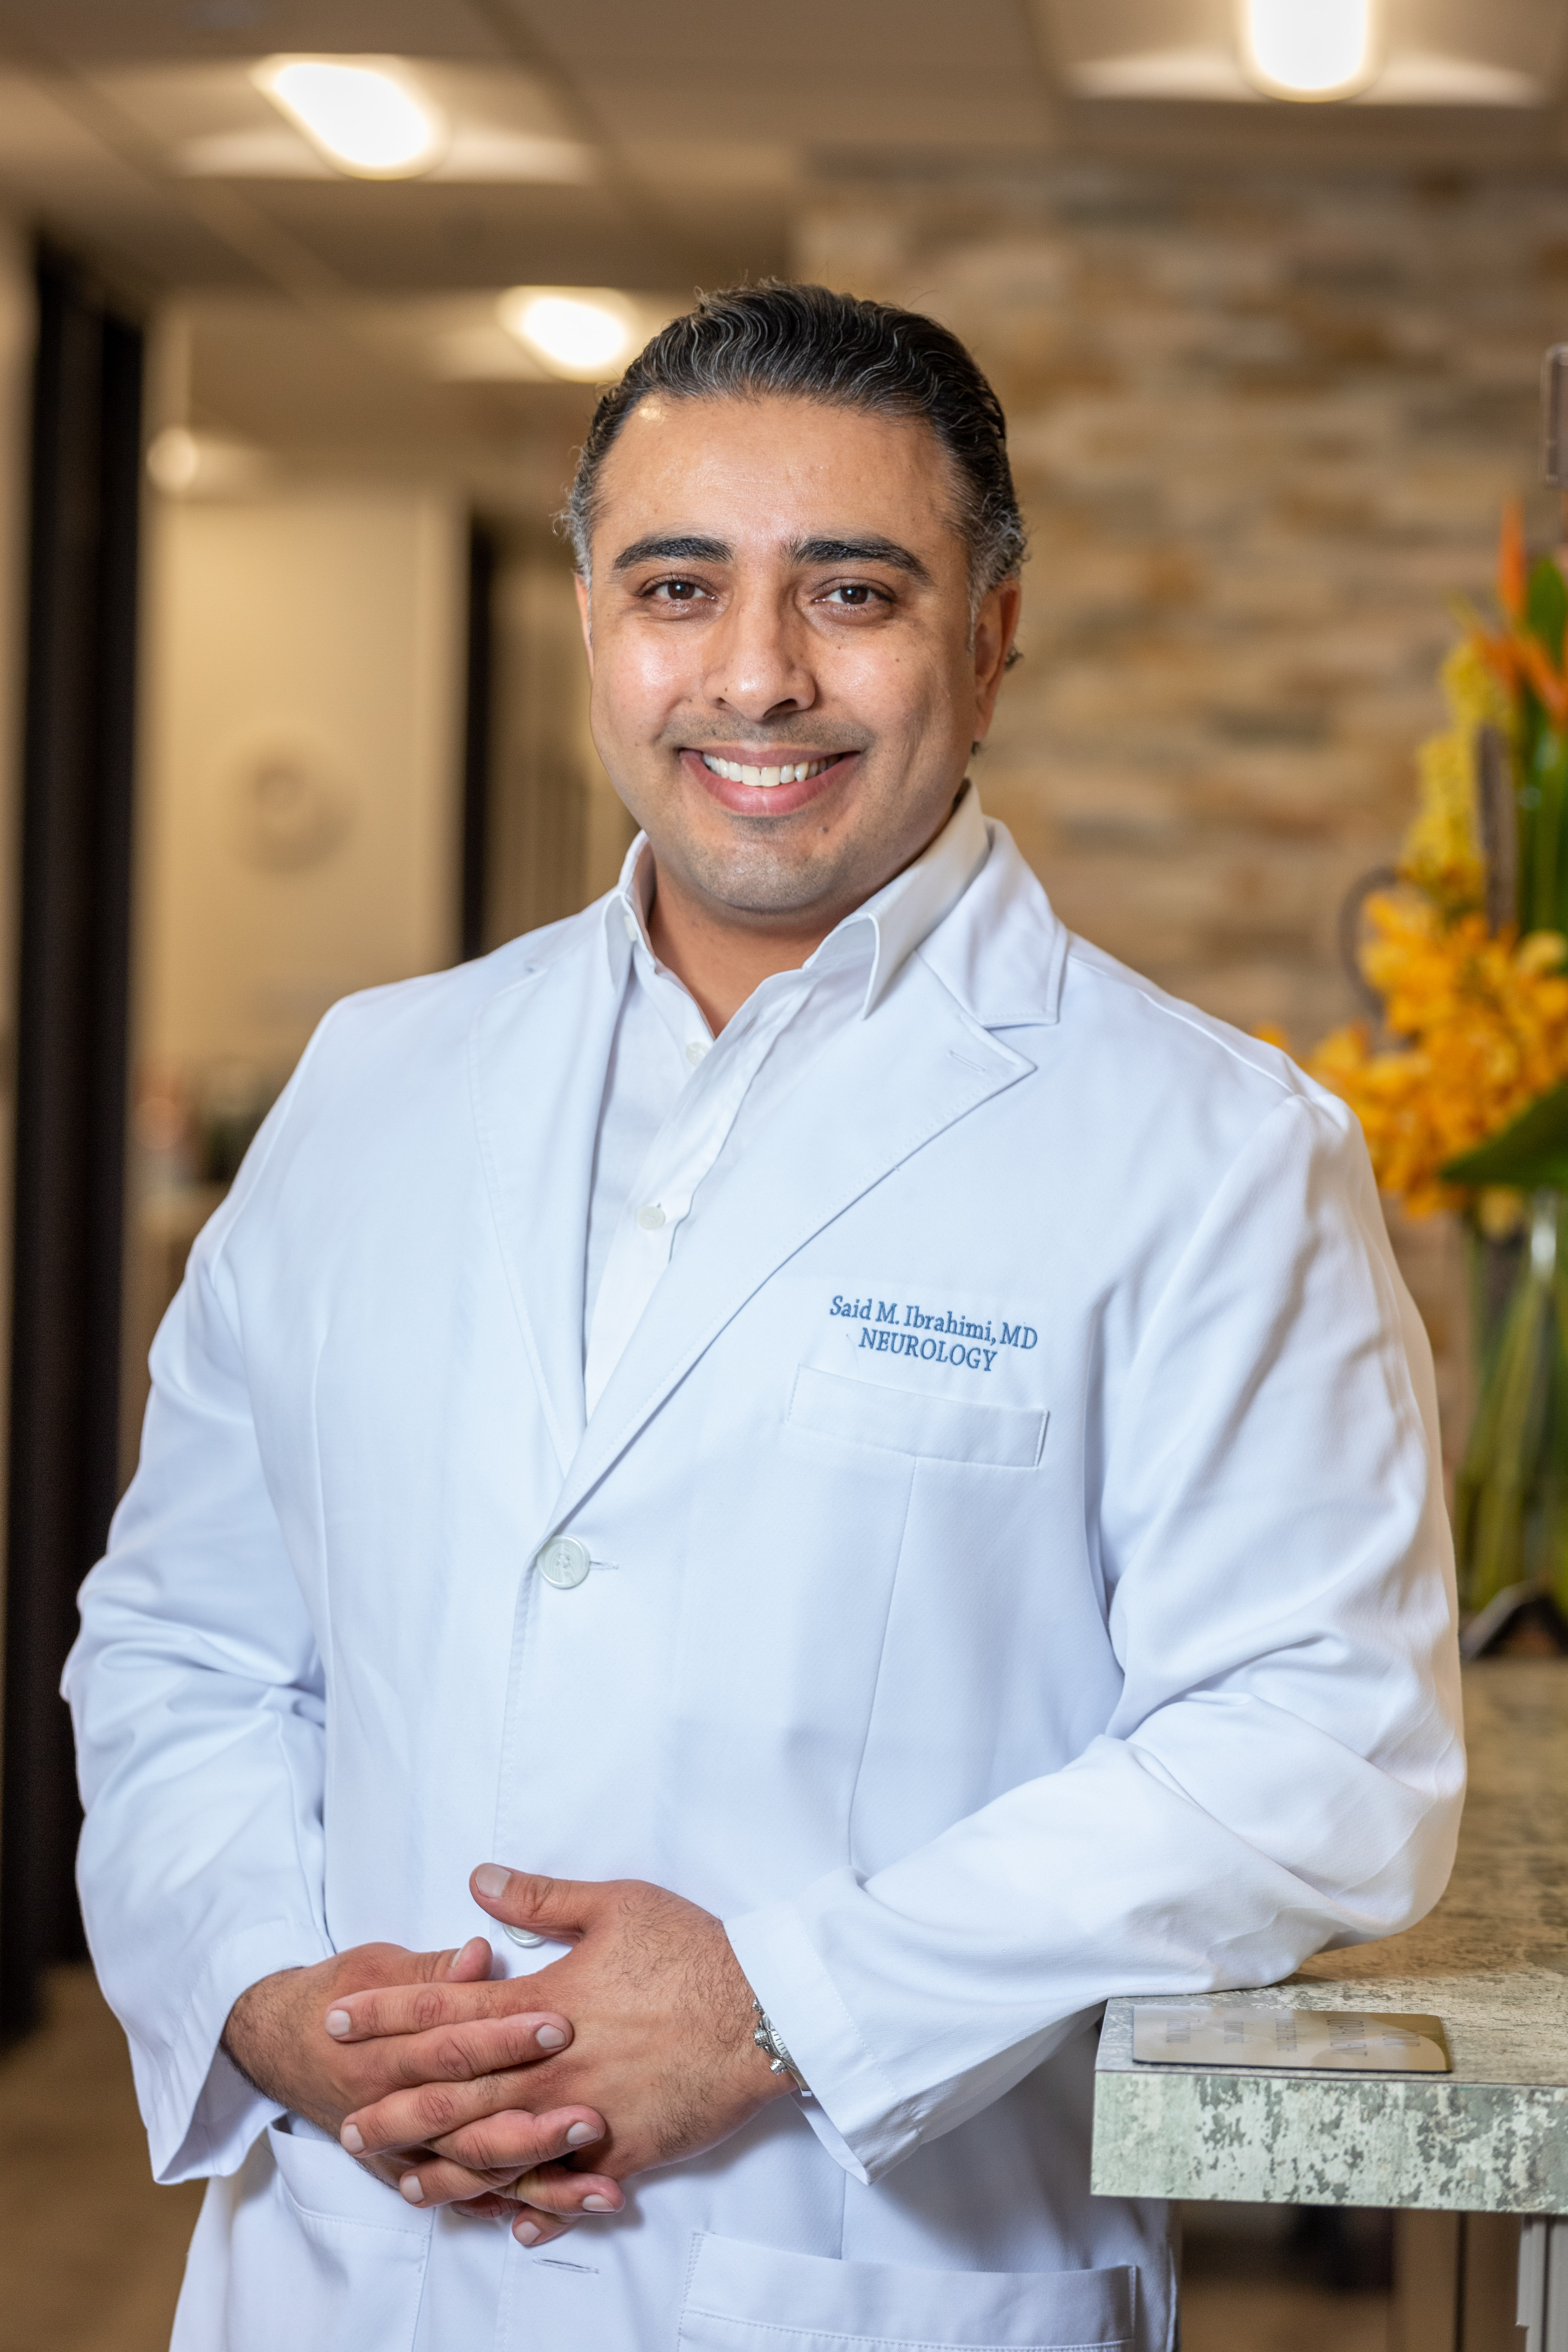 Dr. Said M. Ibrahimi - Bridge Medical Neurology Consultants